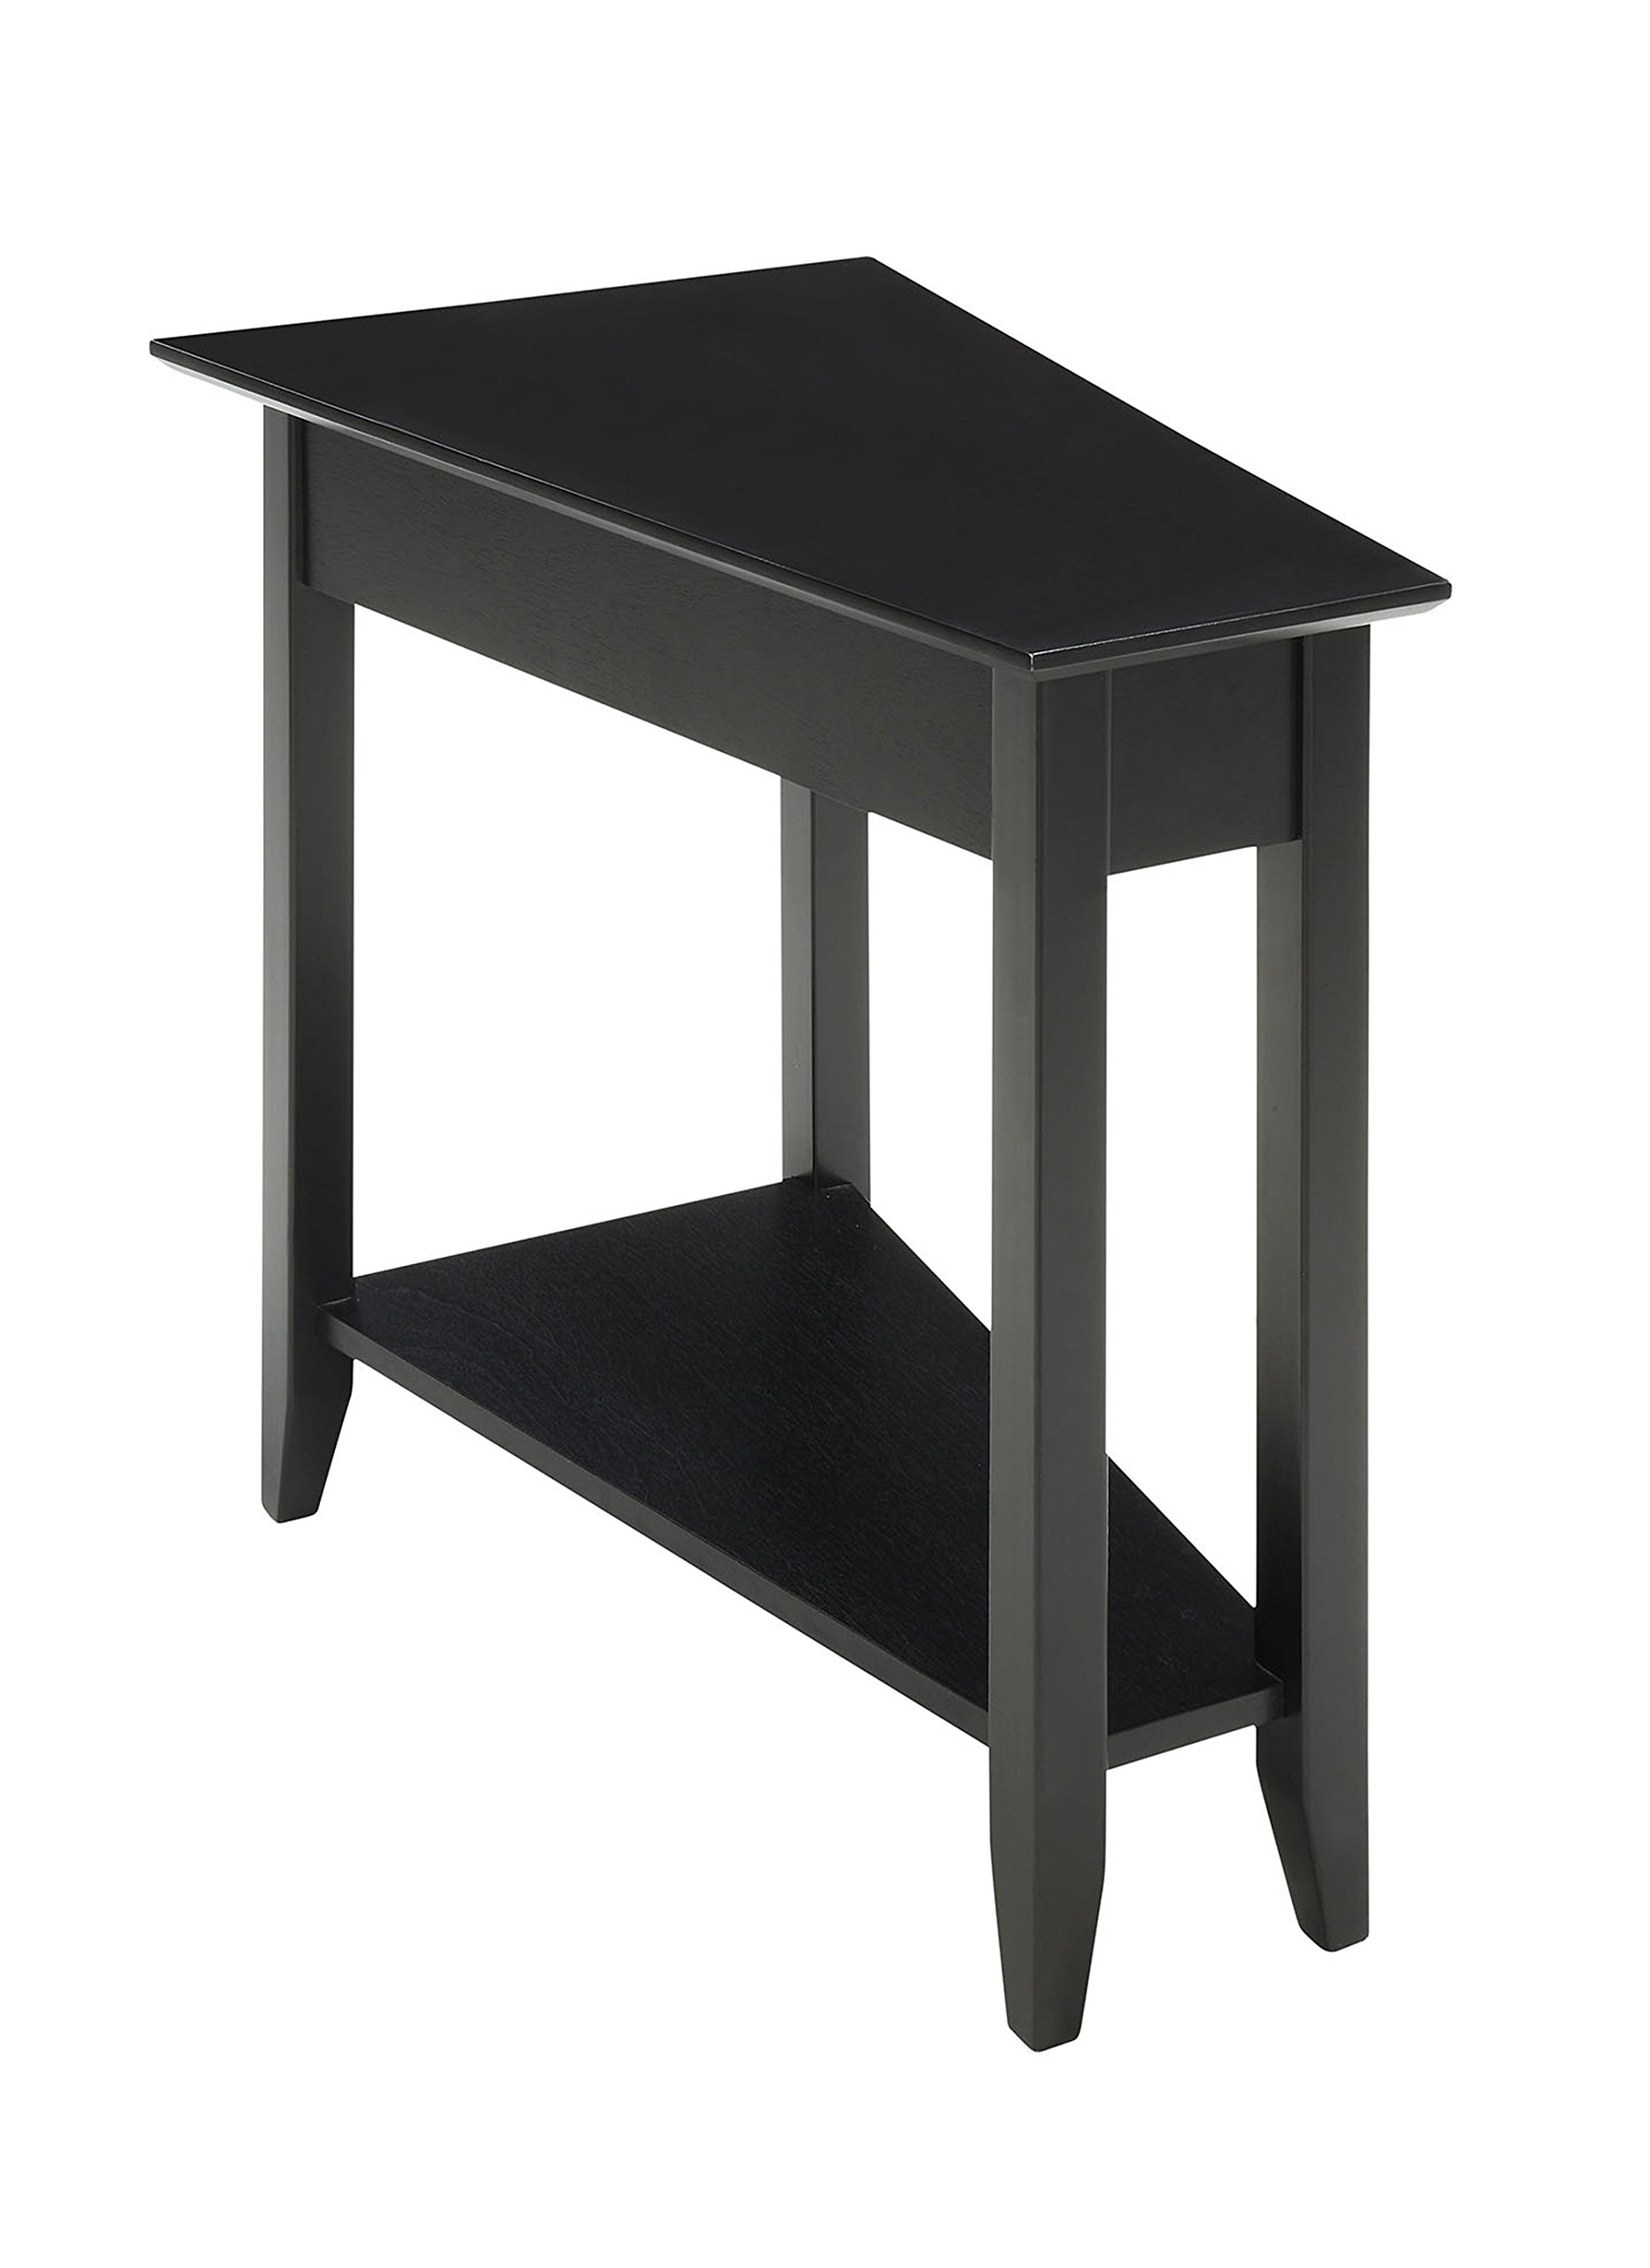 Convenience Concepts American Heritage Modern Wedge End Table, Black by Convenience Concepts